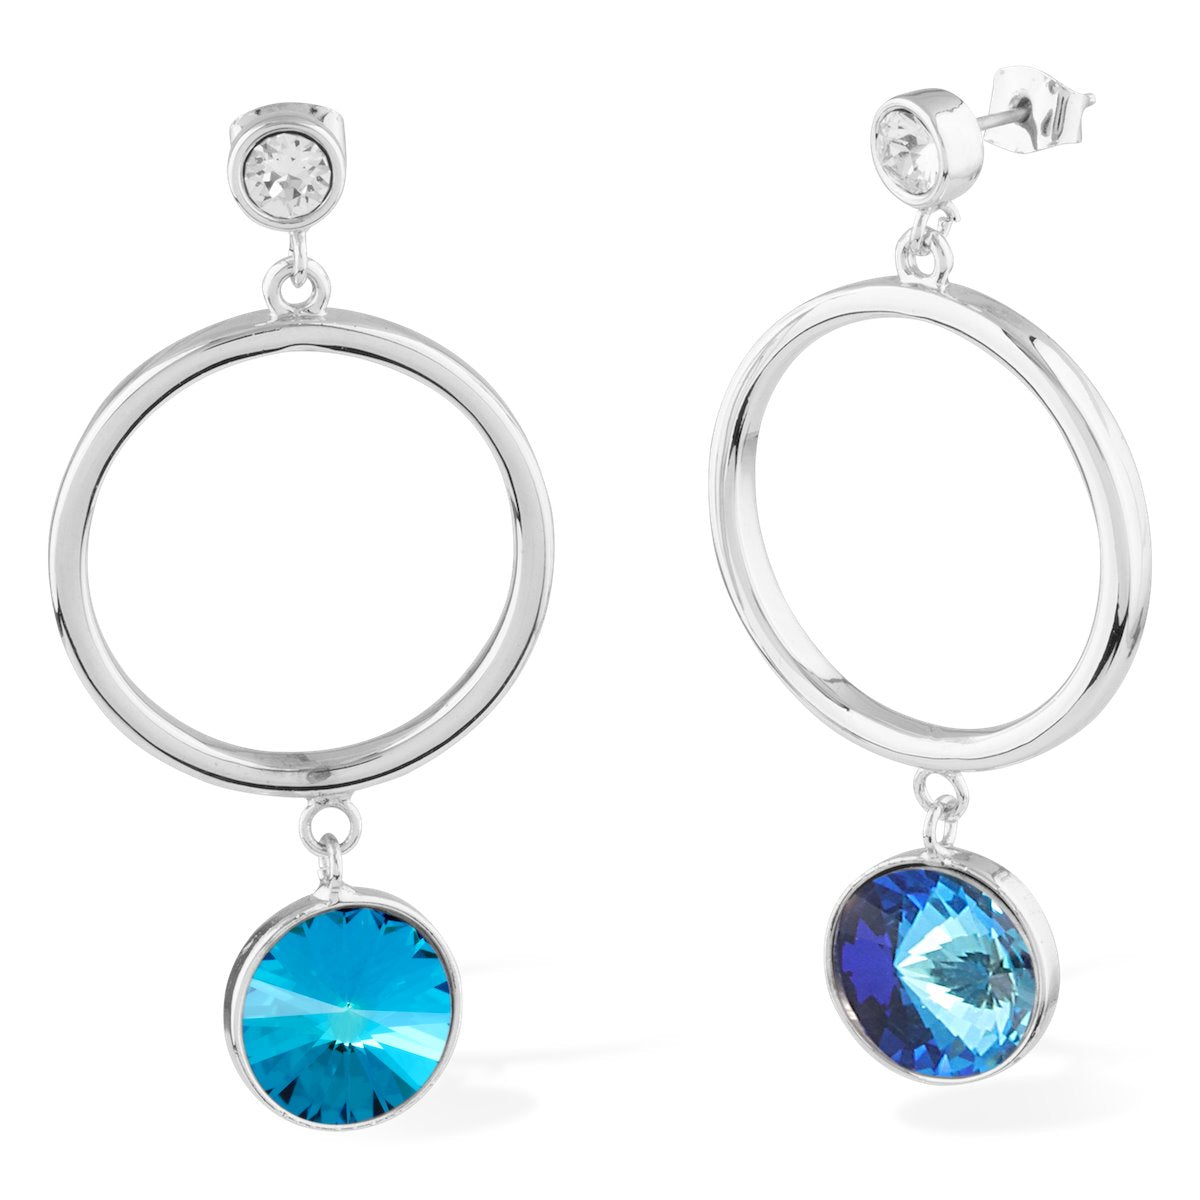 Apollo Earrings Forevercrystals Bermuda Blue